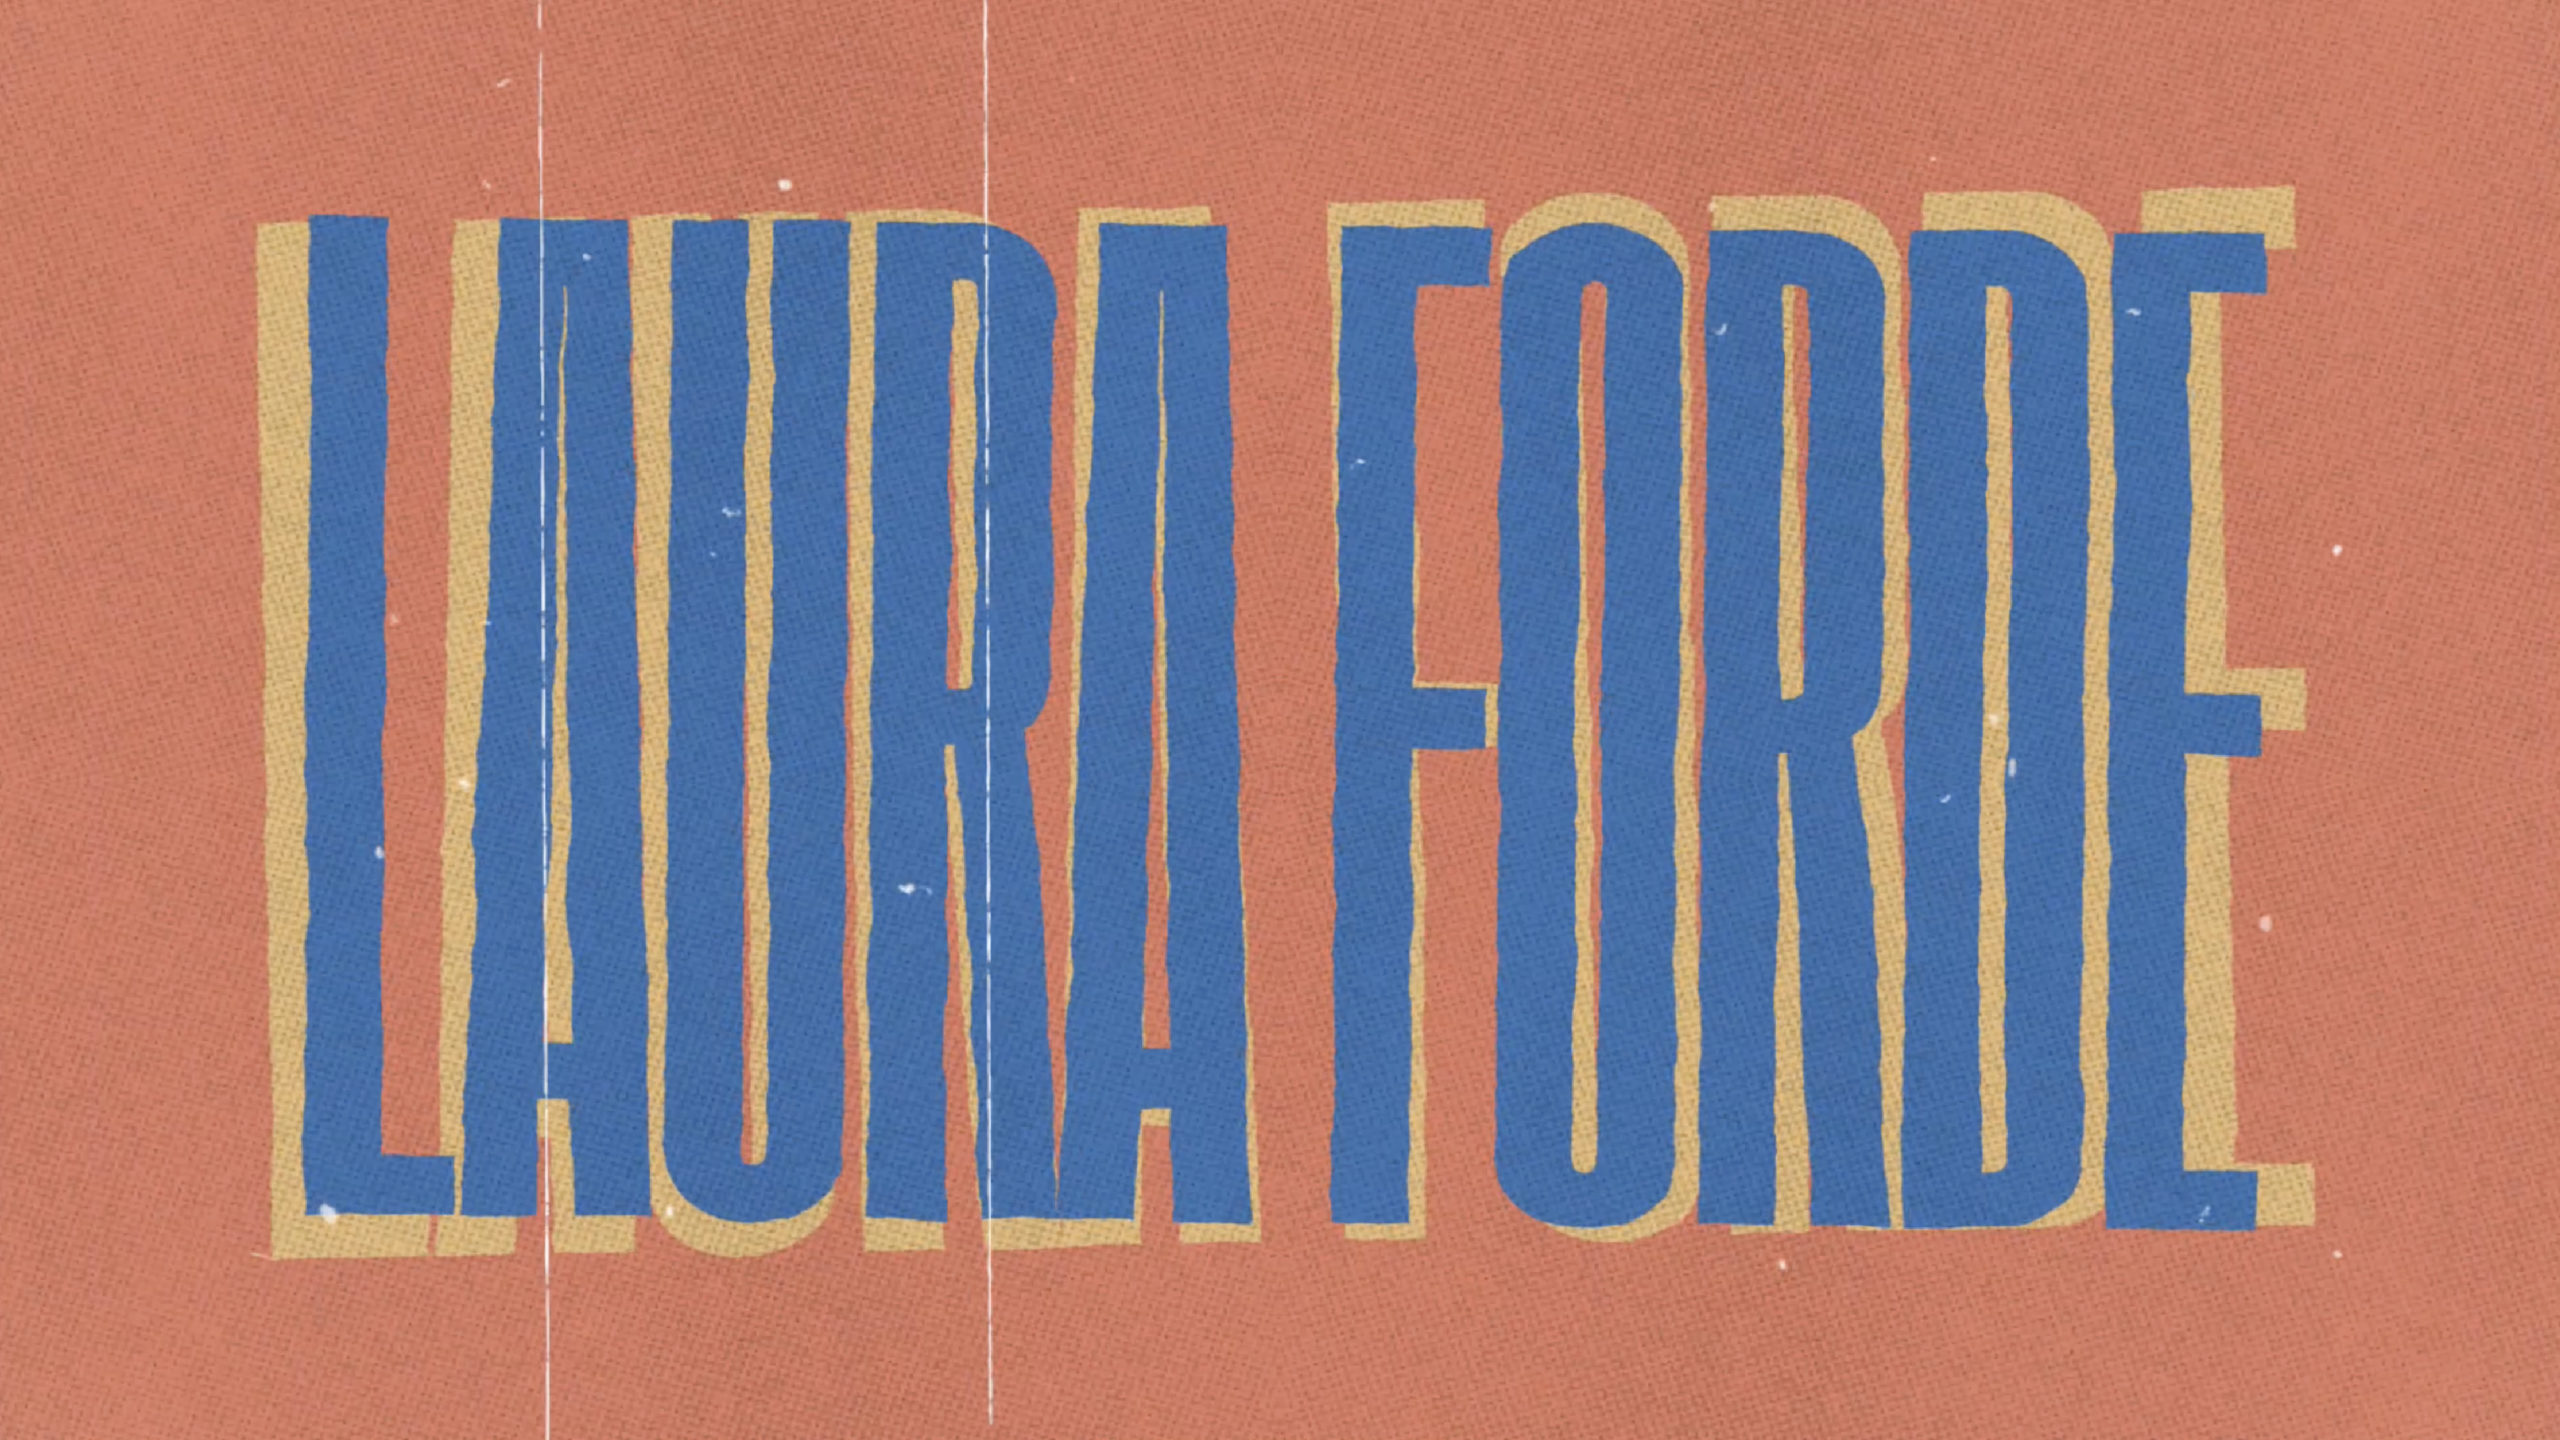 laura forde design in blue letters on orange background